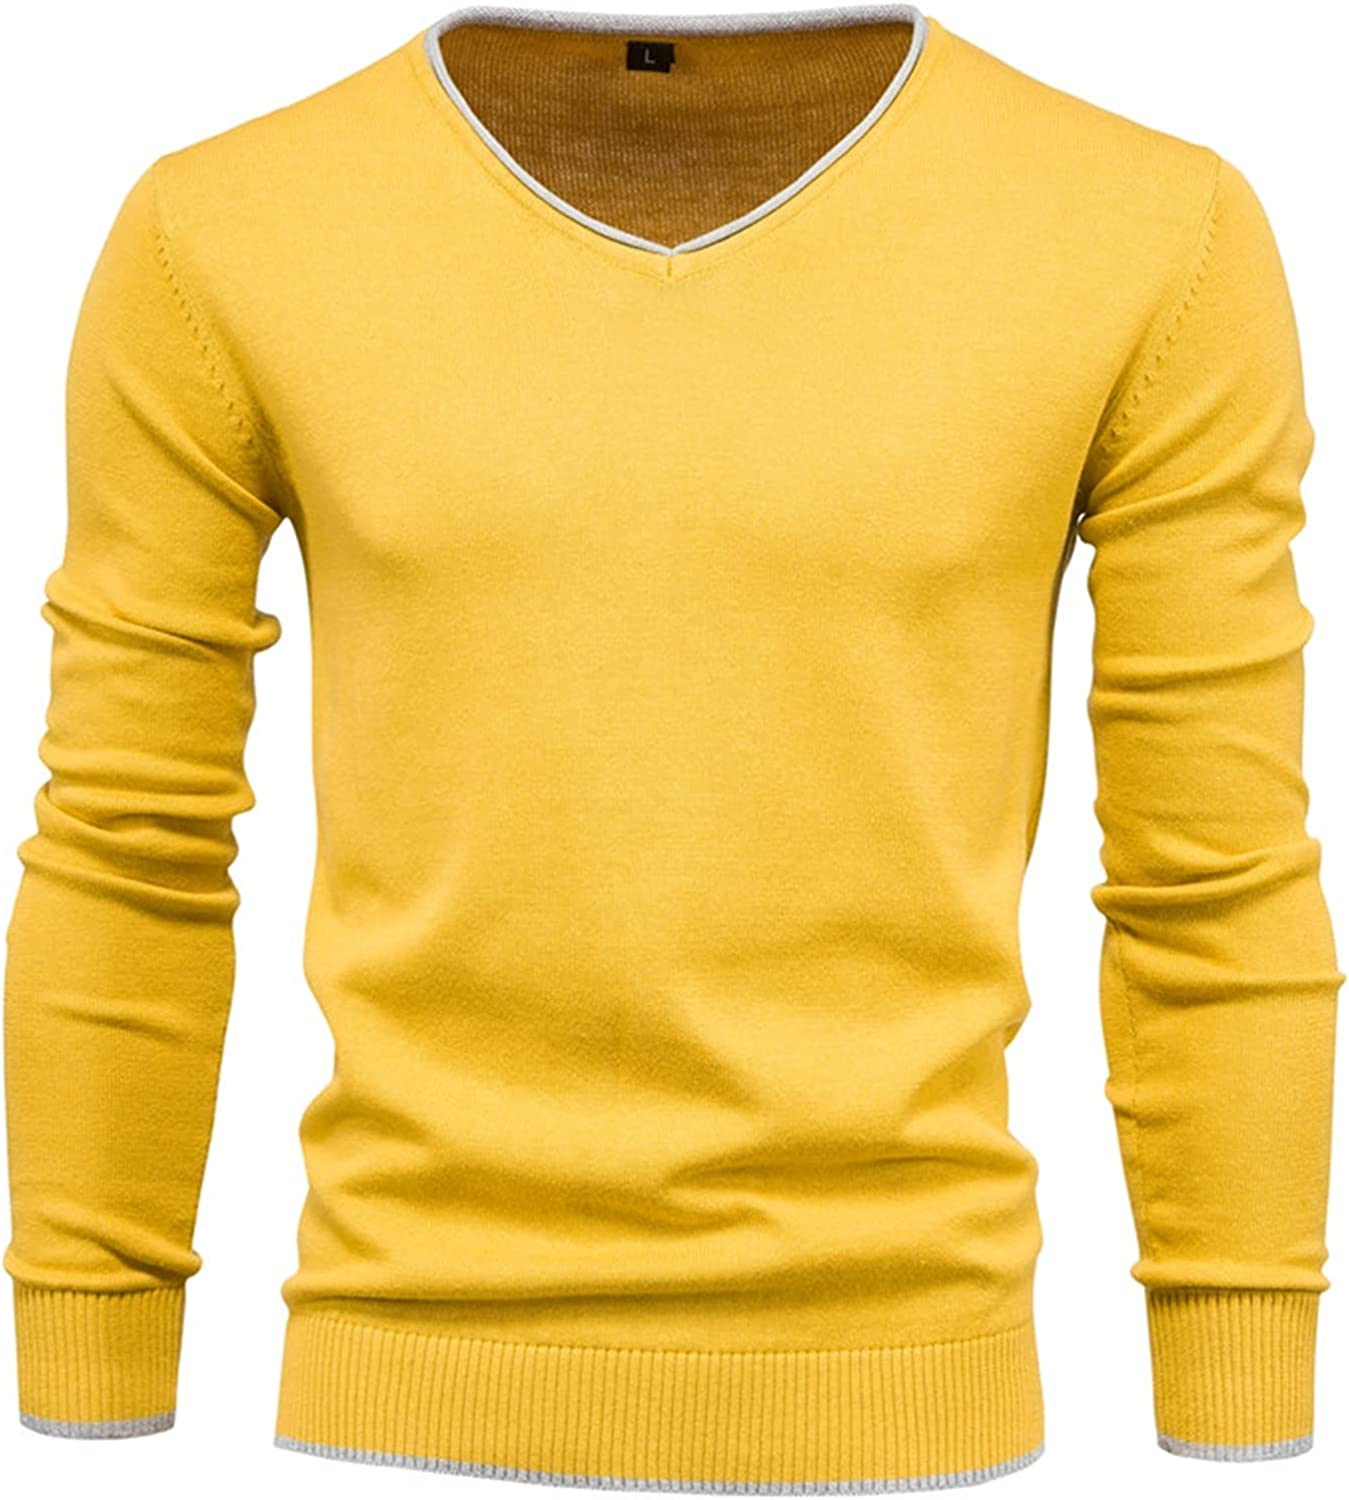 LYMZZY Men Autumn Sweater V-Neck Pullovers Cotton Solid Color Long Sleeve Slim Sweaters Men Navy Knitwear (Color : Yellow, Size : Medium)